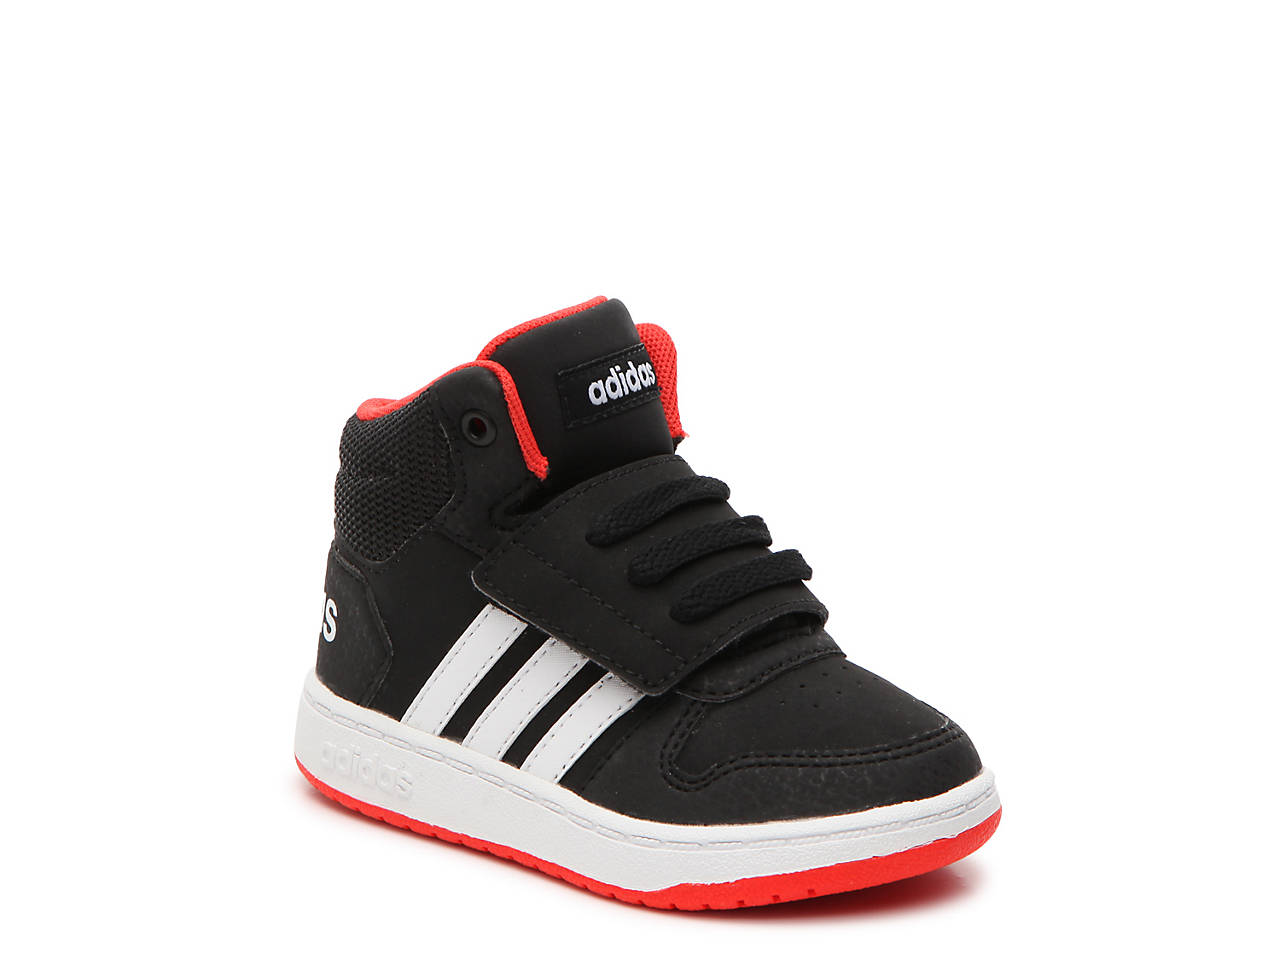 1b41a02e5e418 adidas Hoops Mid 2 Toddler High-Top Sneaker Kids Shoes